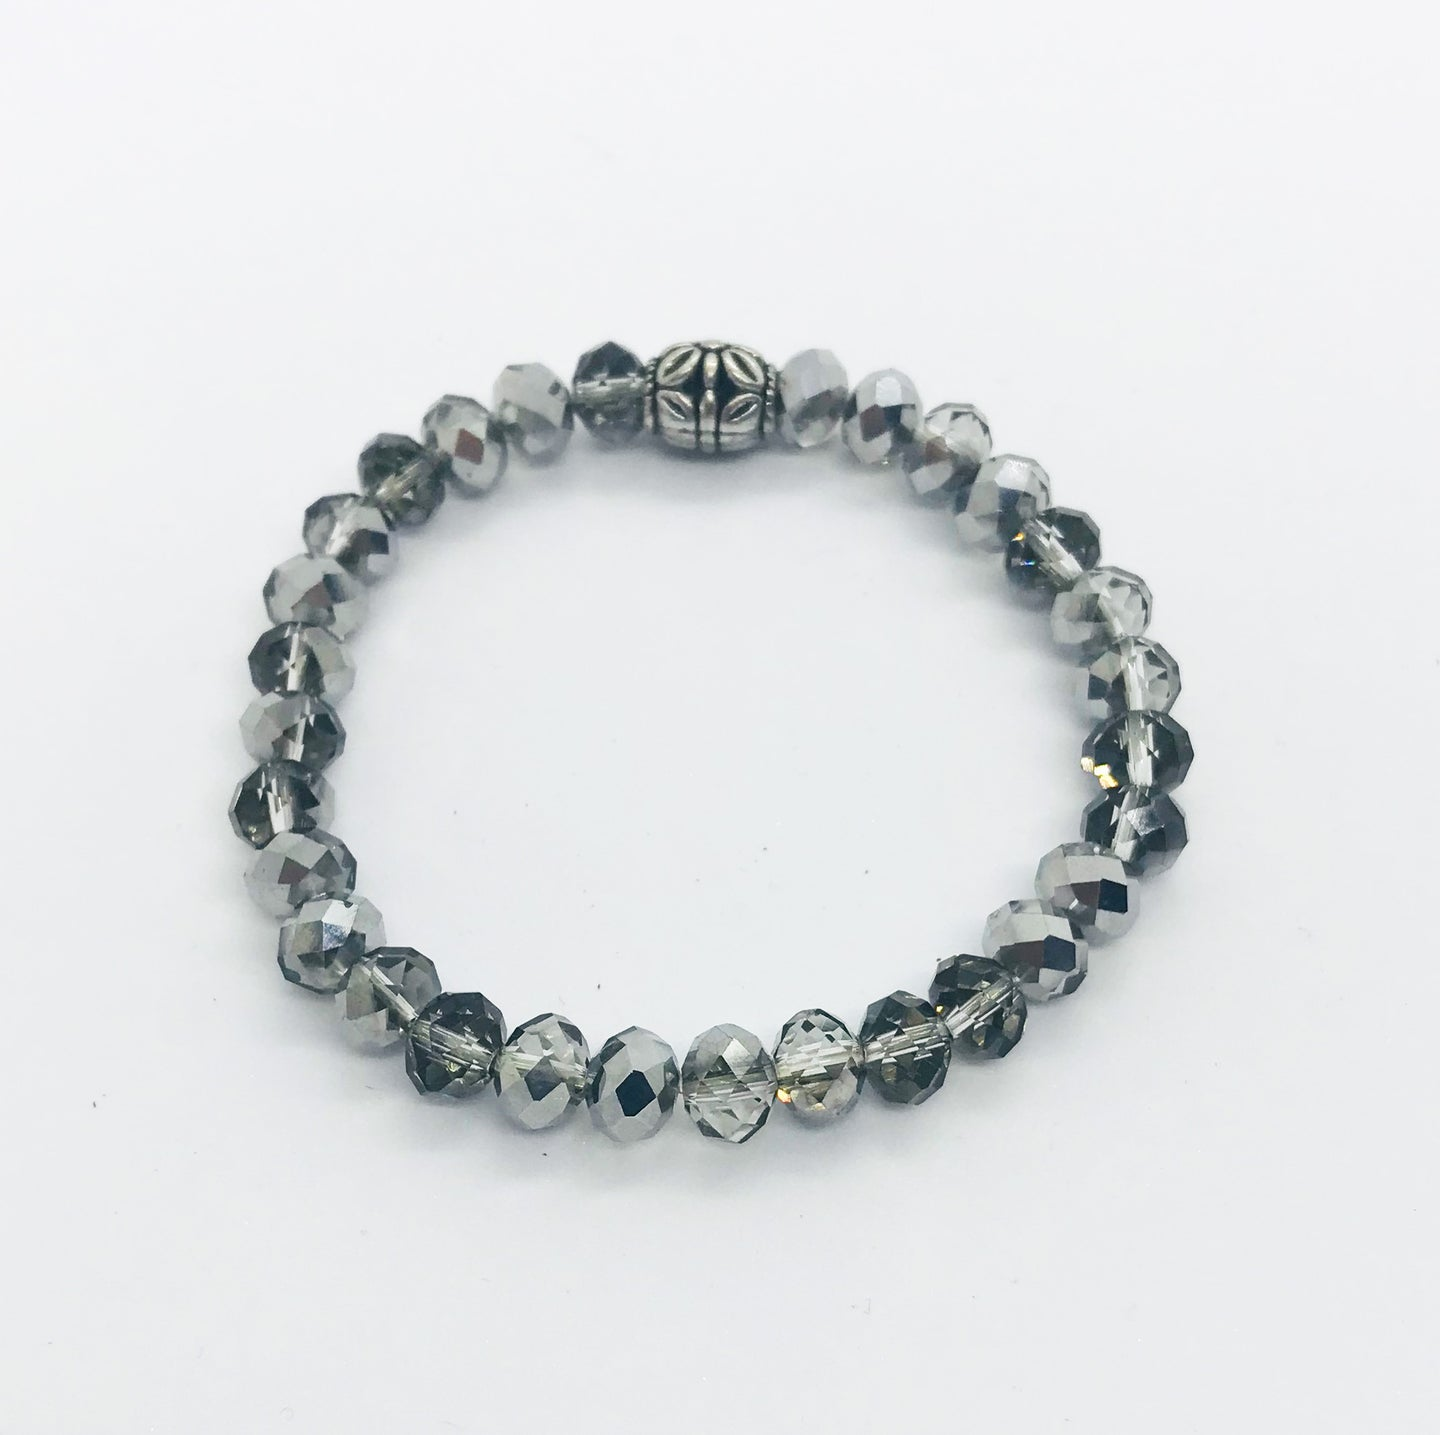 Glass Bead Stretchy Bracelet - B471